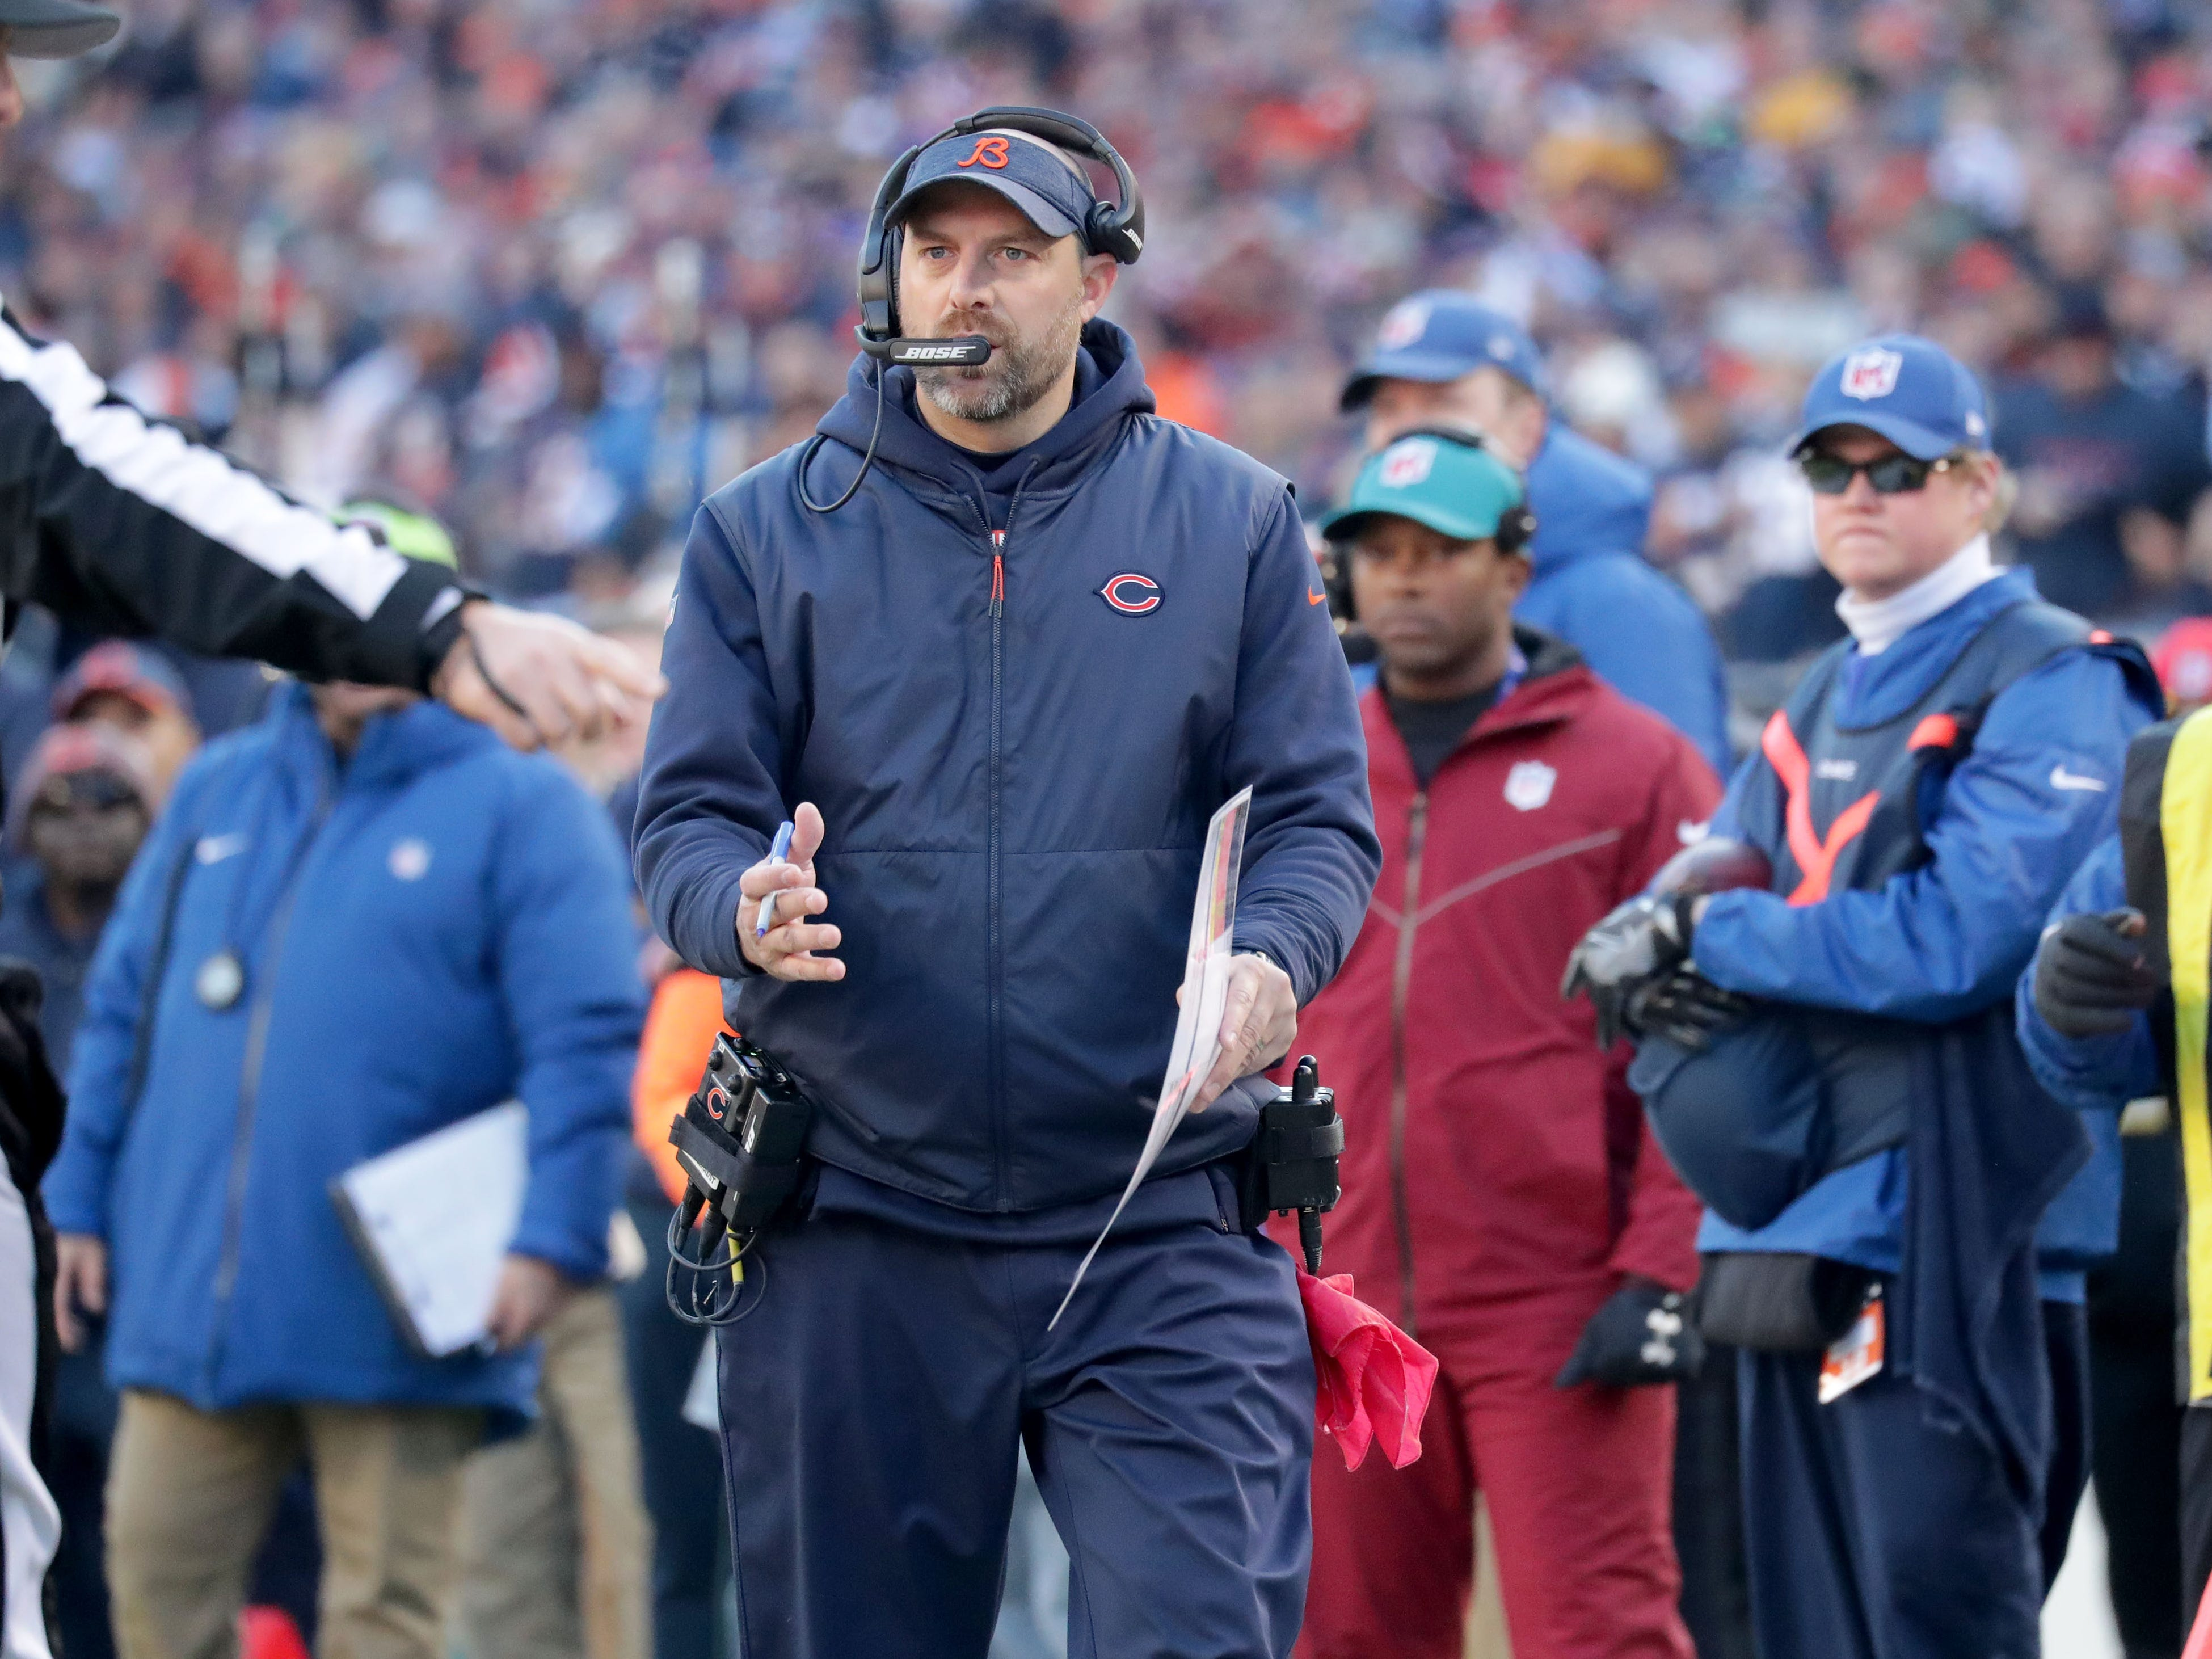 Chicago Bears' head coach Matt Nagy talks to a ref during the 2nd half of the Green Bay Packers 24-17 loss to the Chicago Bears at Soldier Field Sunday, Dec. 16, 2018, in Chicago. Photo by Mike De Sisti / The Milwaukee Journal Sentinel